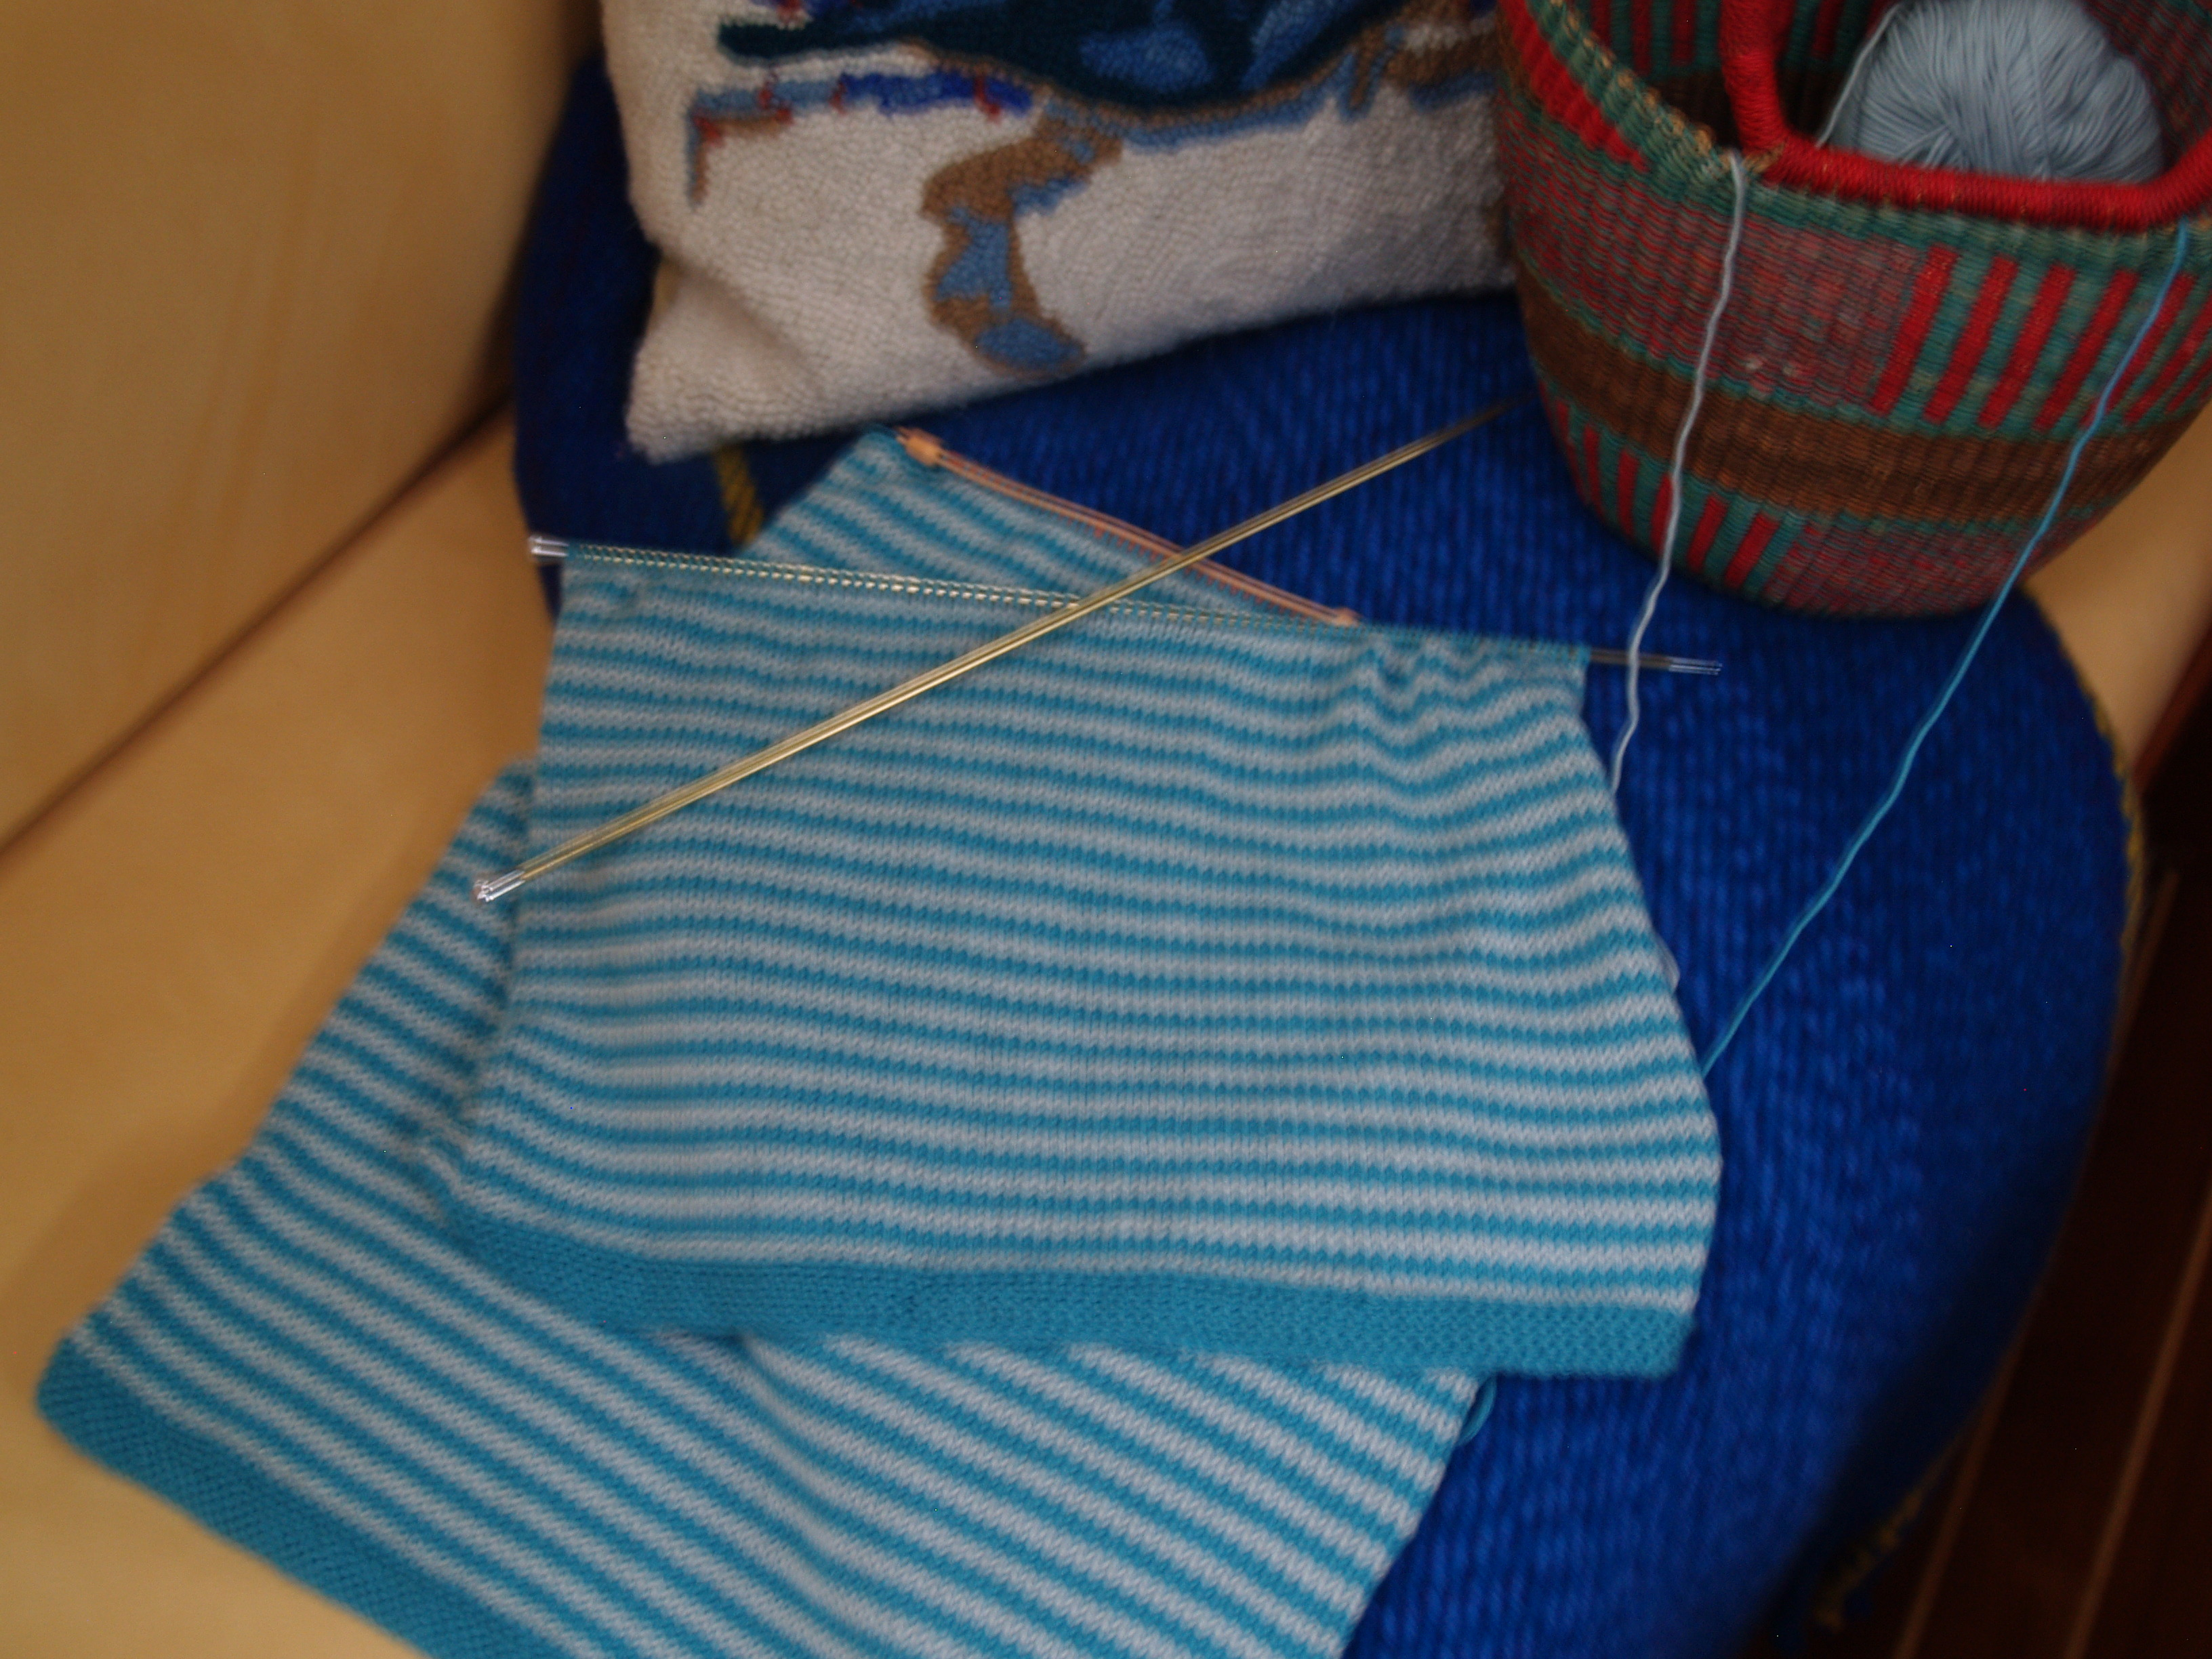 Debbie Bliss's sailor sweater in Ecobaby cotton